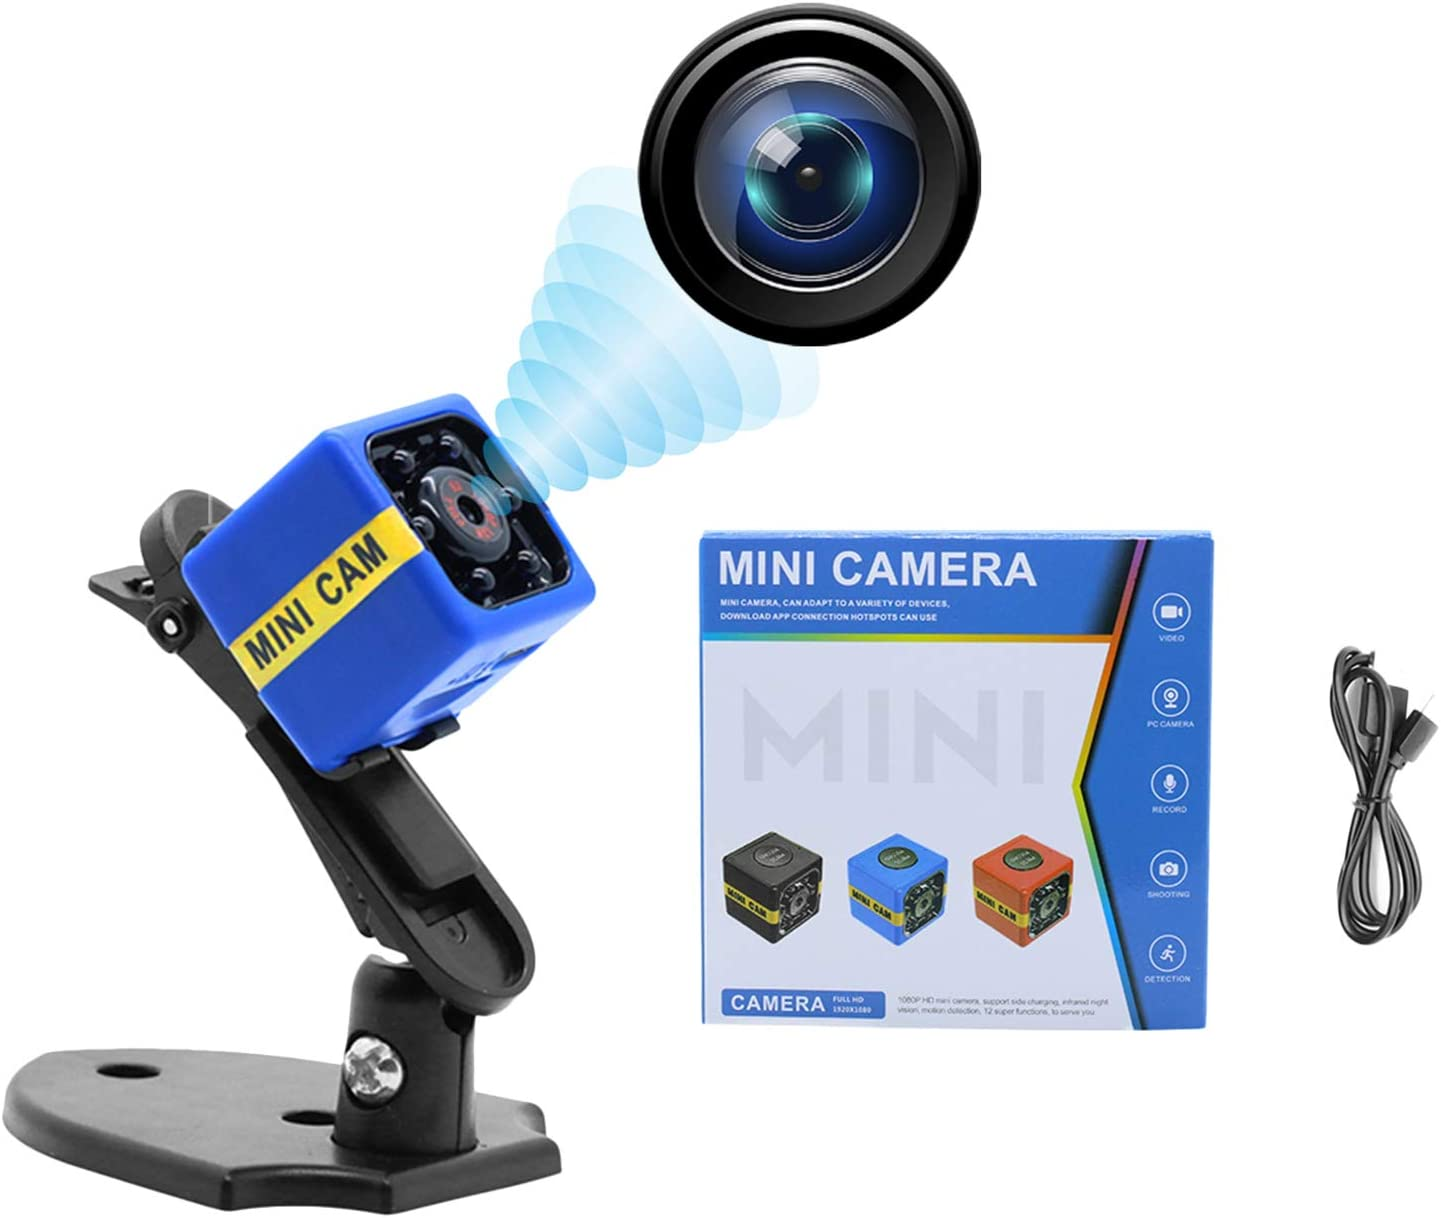 Mini Spy Camera, HD 1080P Portable Small Hidden Spy Cam, Portable Small HD Nanny Cam with Night Vision and Motion, Perfect Indoor Covert Security Camera for Home and Office, Built-in Battery(Blue)